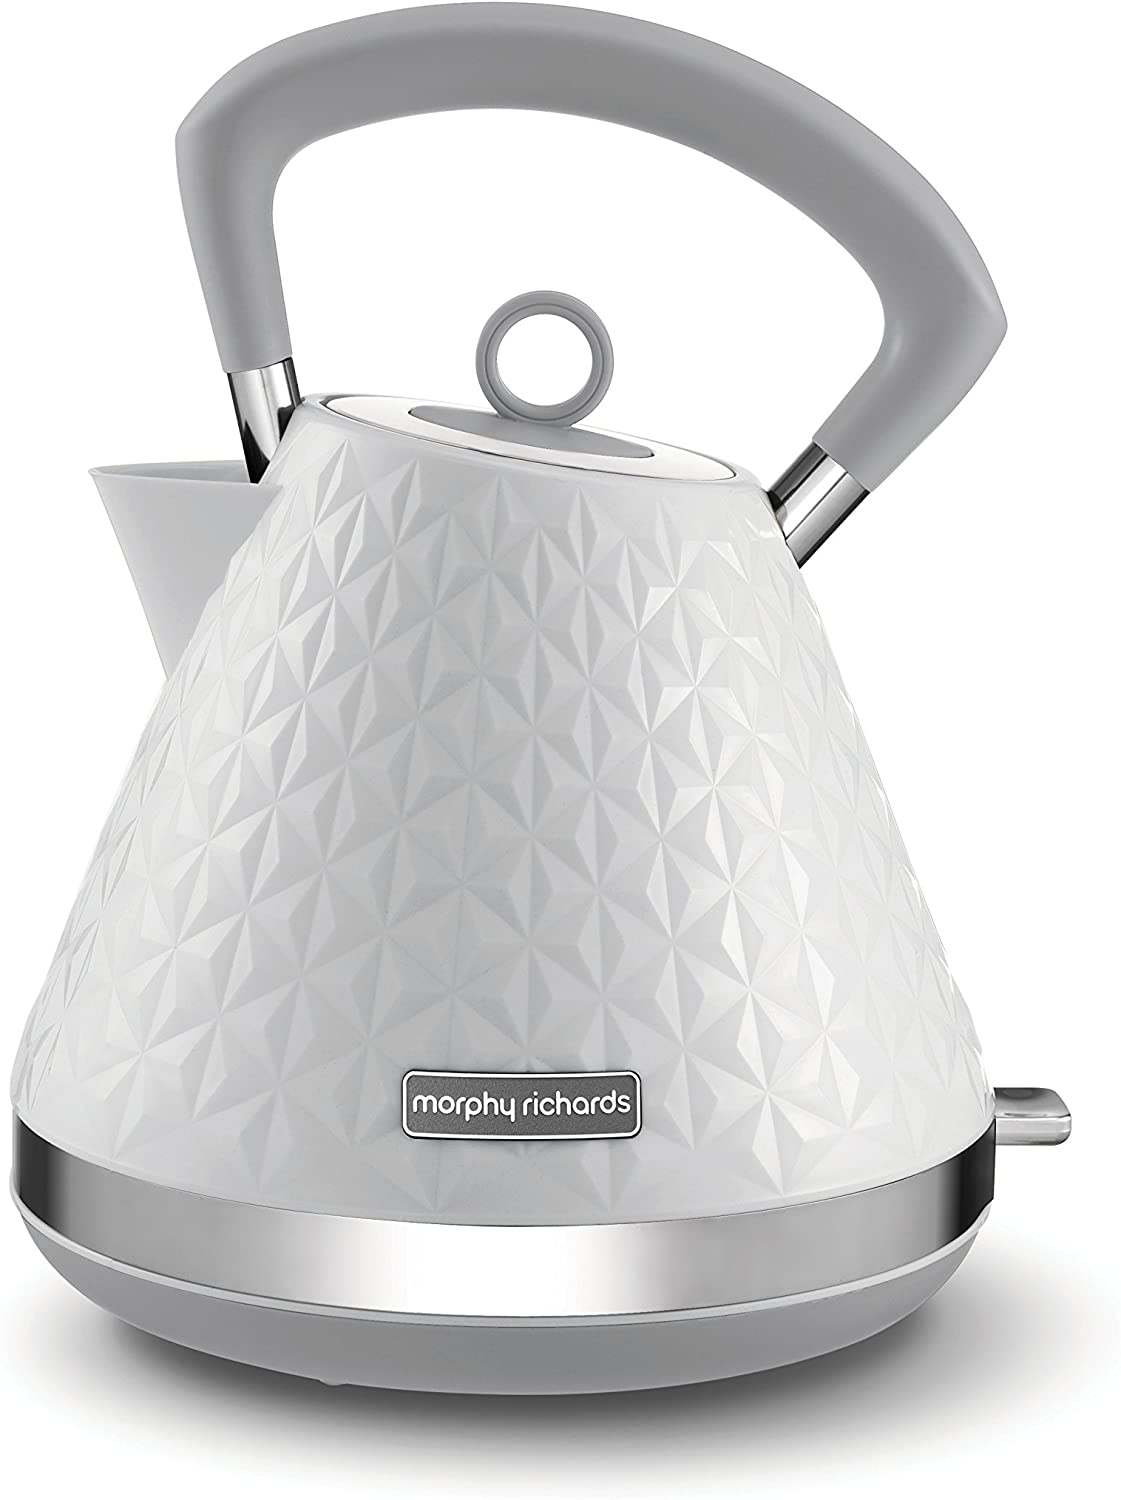 Morphy Richards Vector Pyramid Kettle/4 Slice Toaster, $54.24/$55.87 (was $129) Delivered with Prime @ Amazon UK via AU